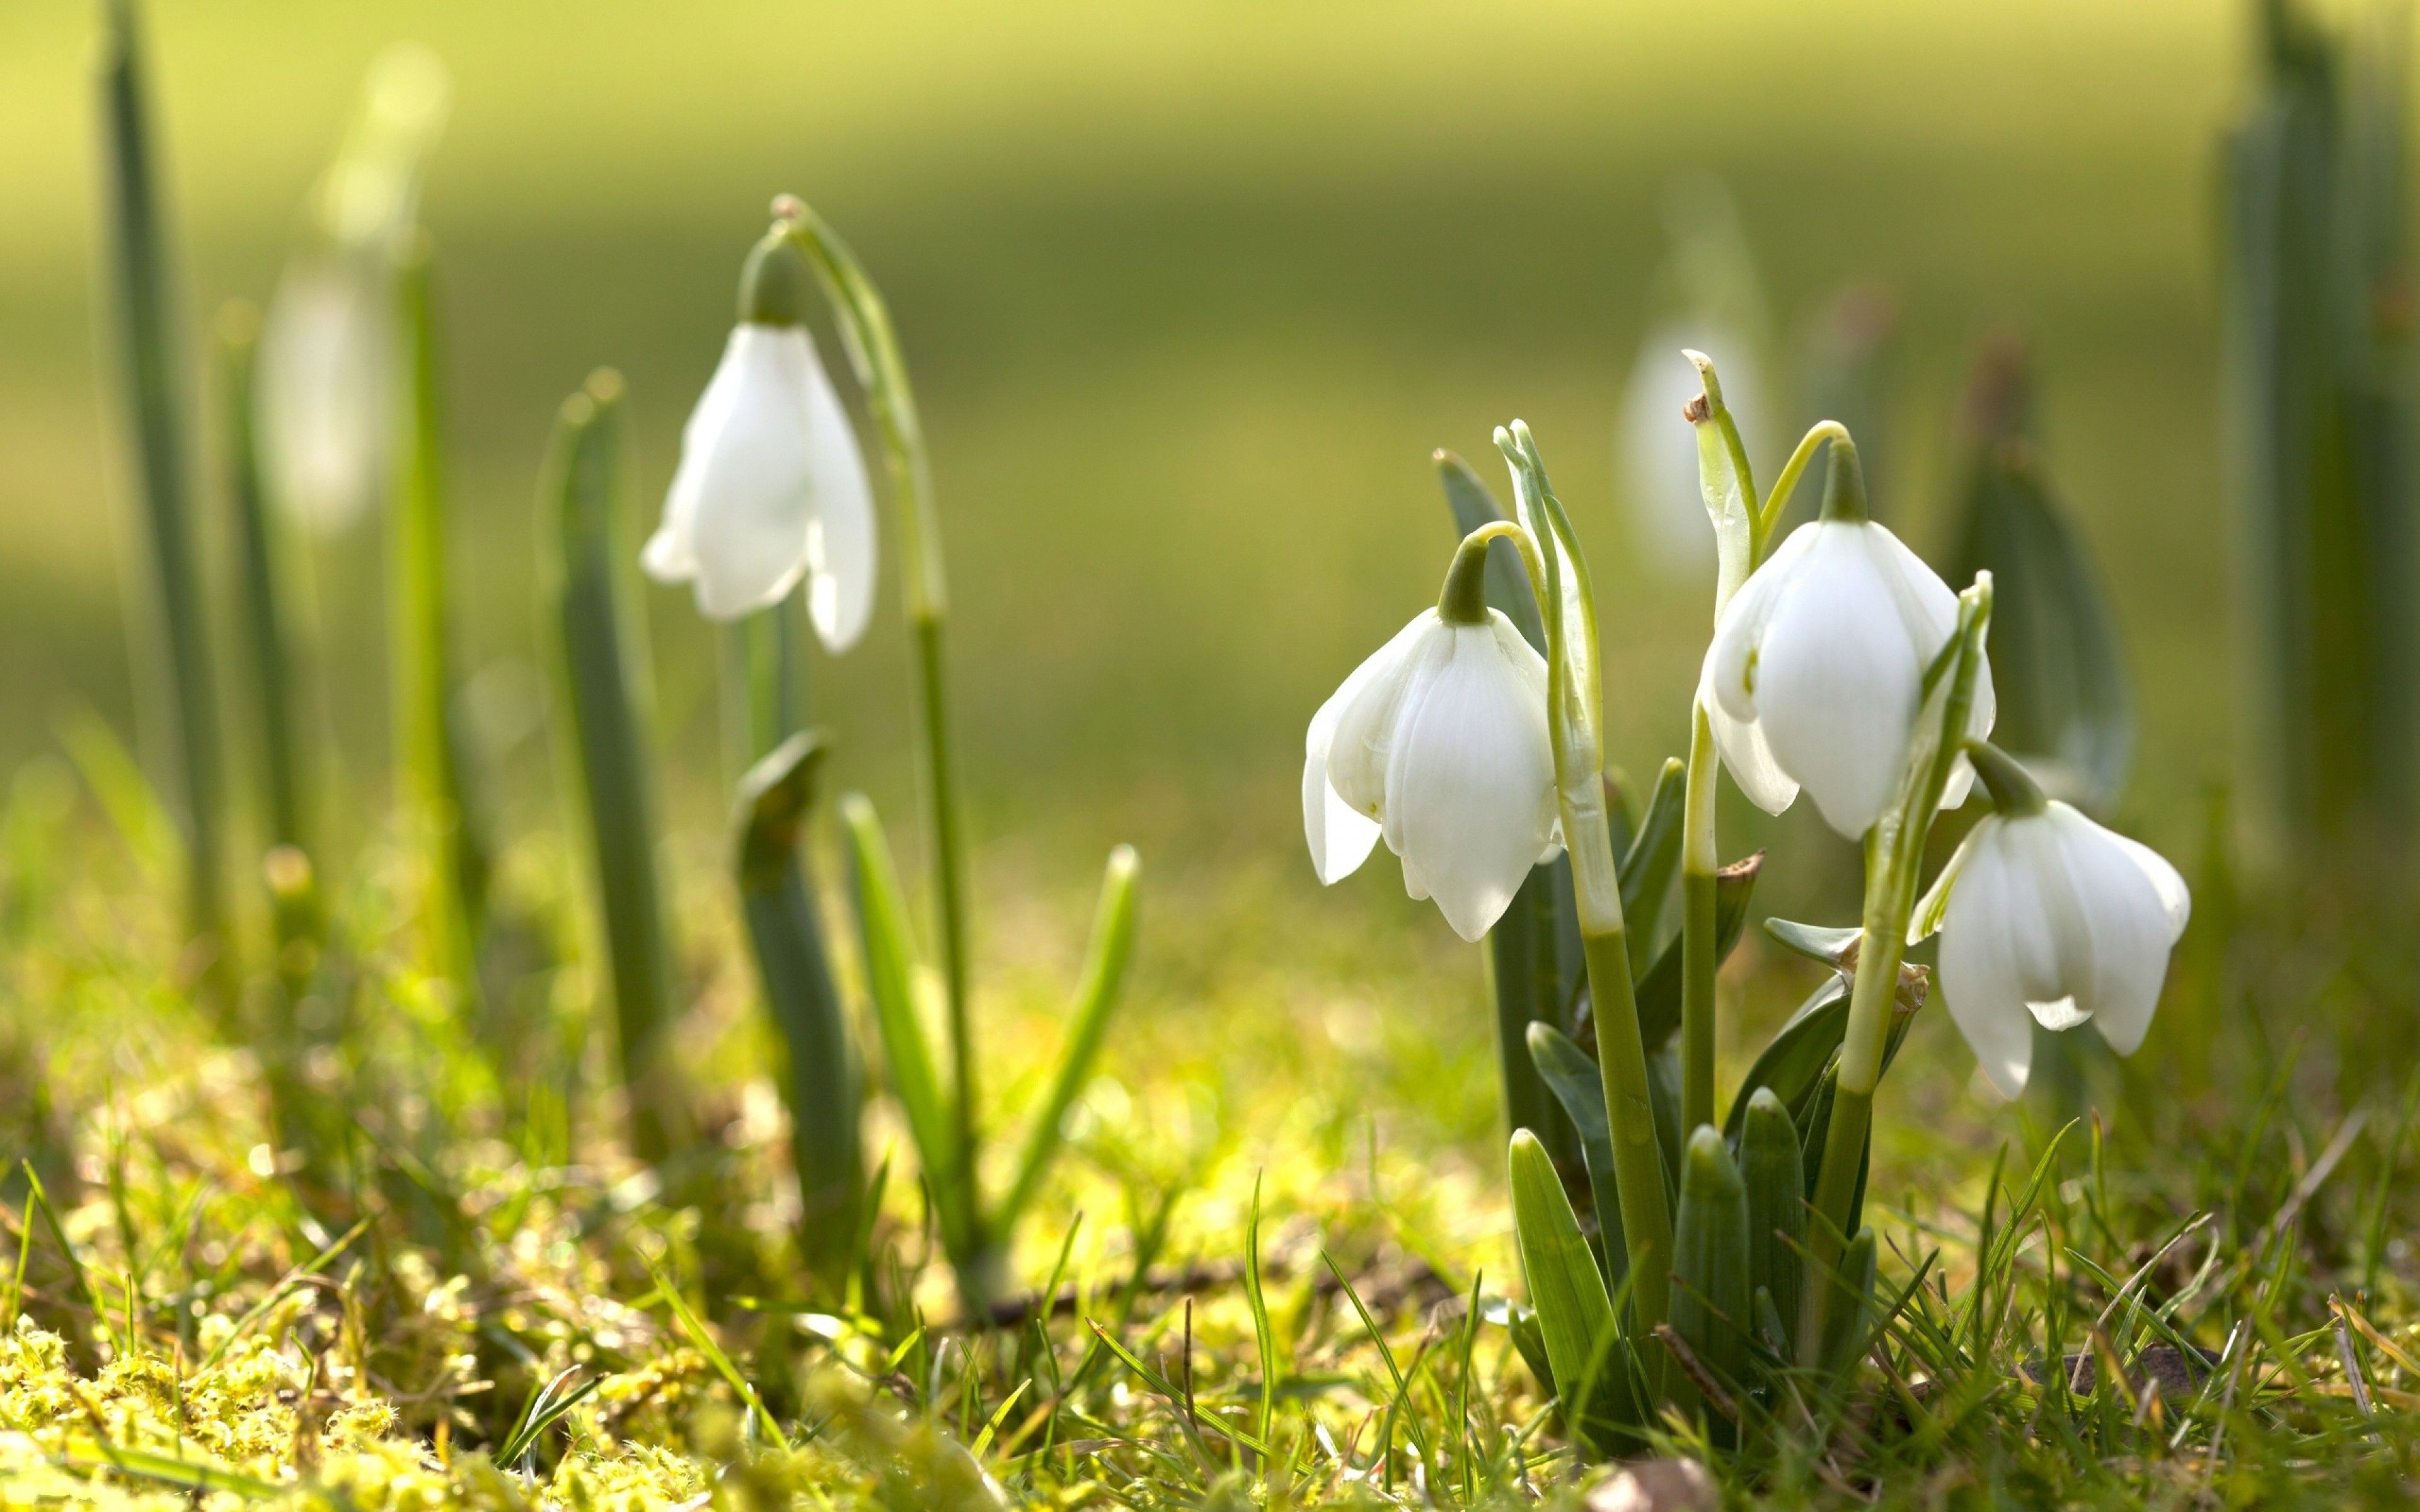 Spring Nature Snowdrops White Flowers Wallpaper And Background Early Spring Flowers Spring Flowers Wallpaper Spring Flowers